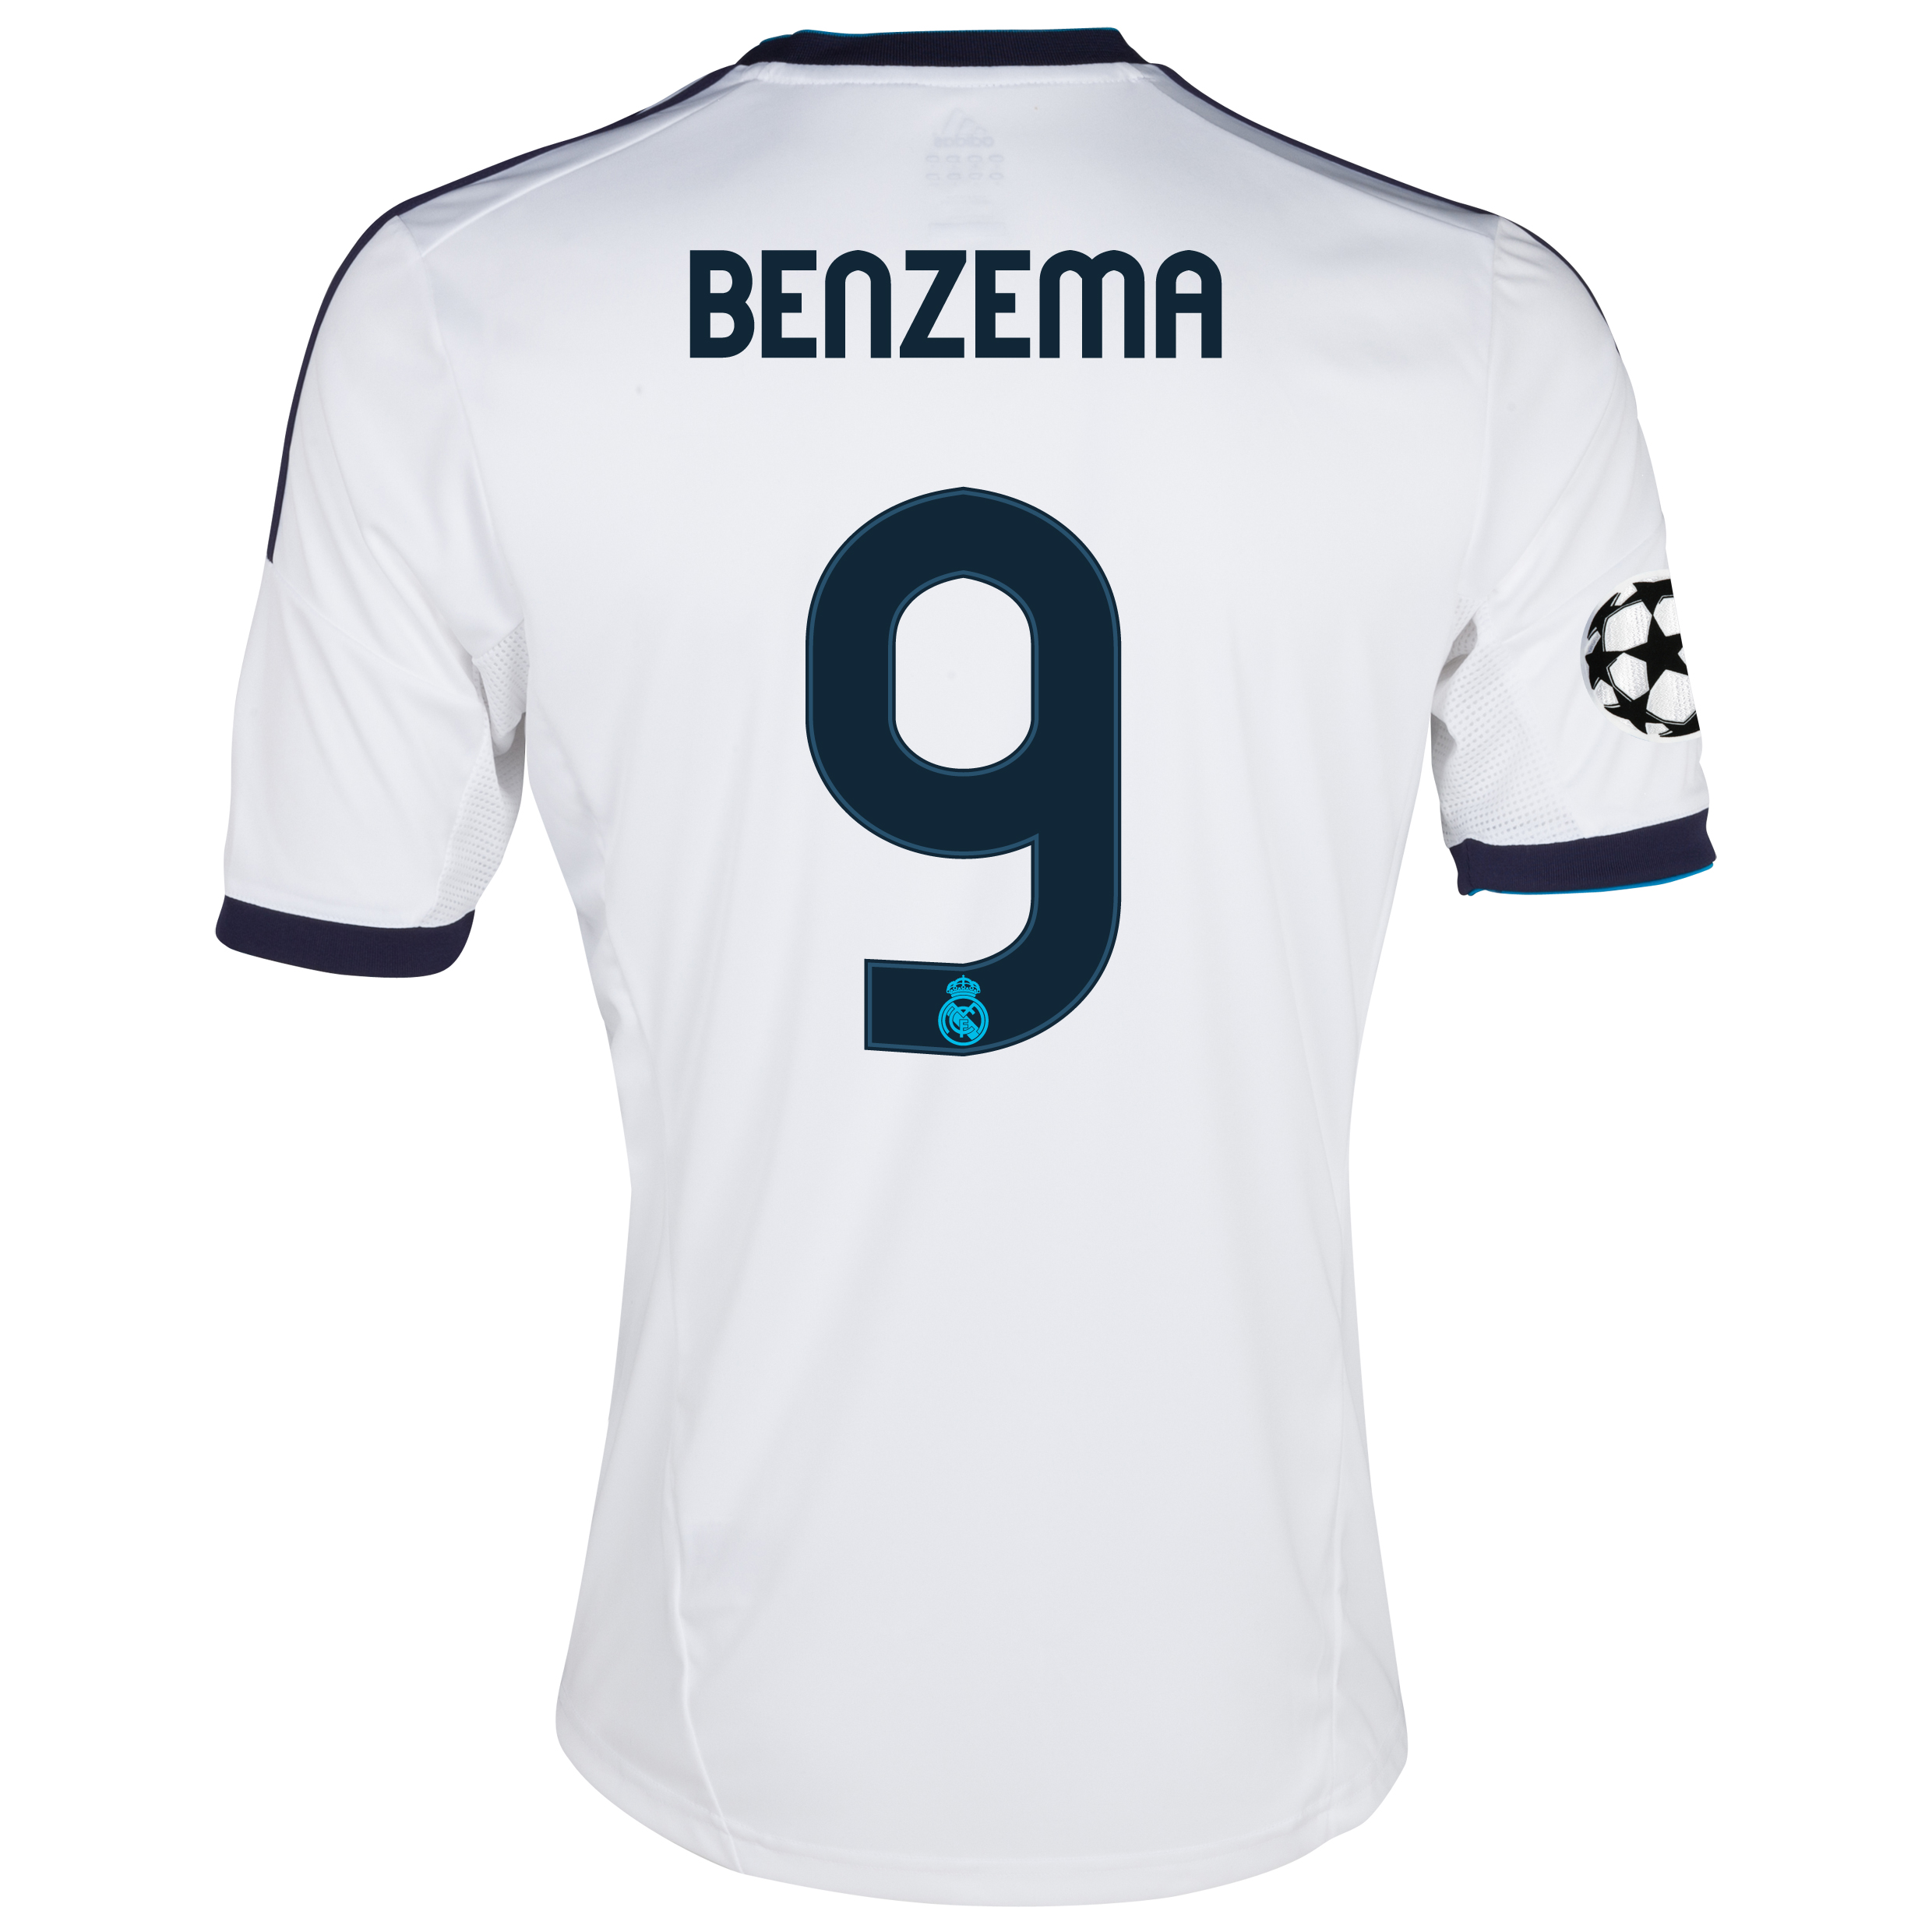 Real Madrid UEFA Champions League Home Shirt 2012/13 with Benzema 9 printing